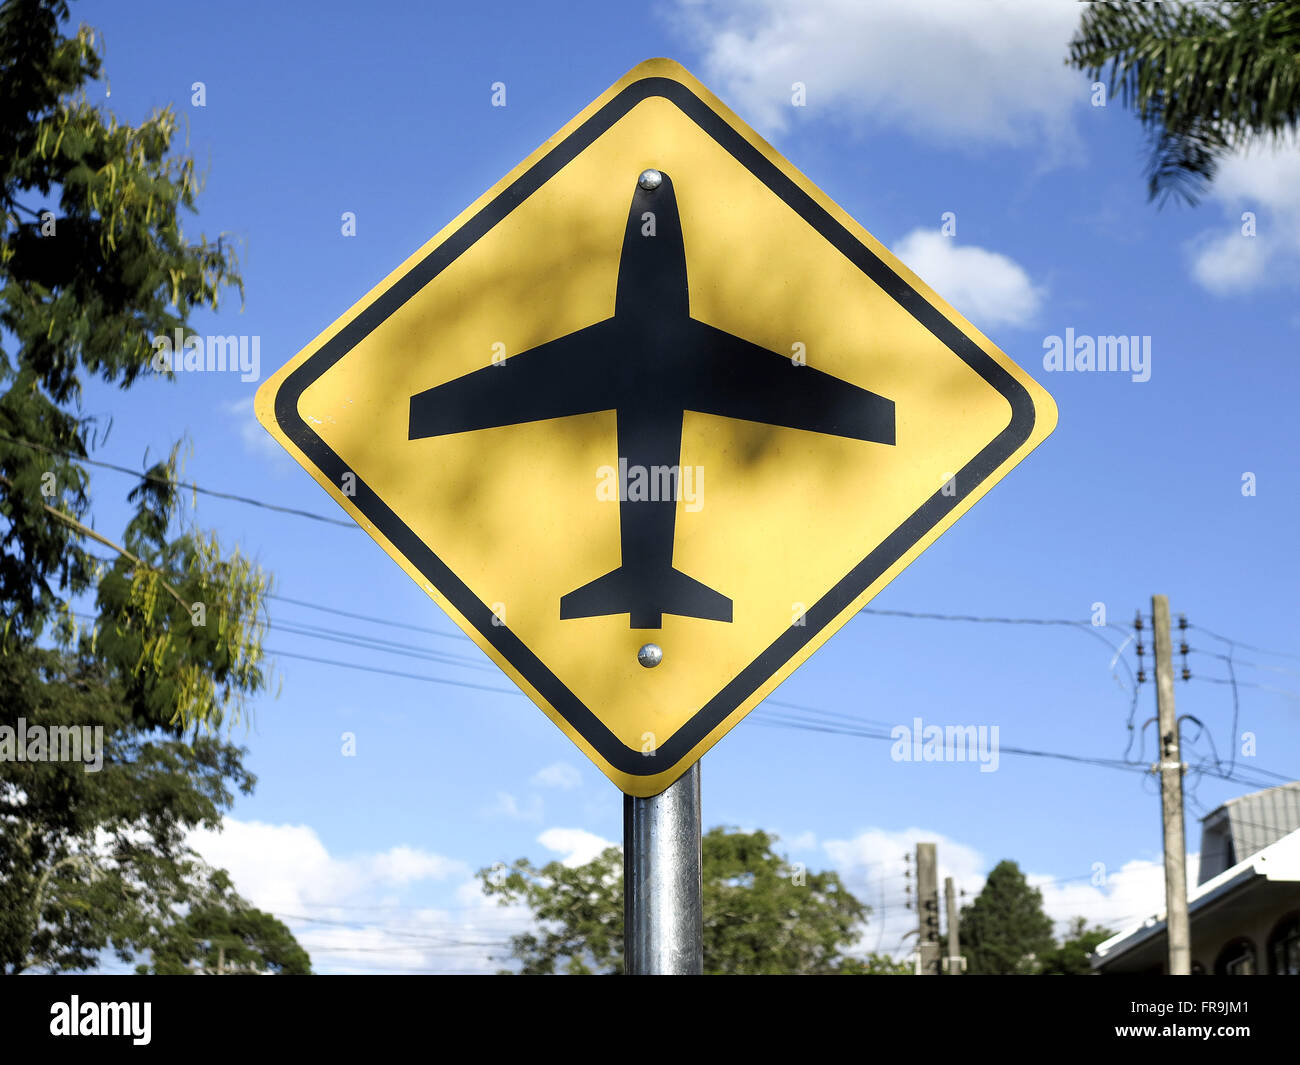 Vertical signpost of airport indication in Bacacheri district. - Stock Image